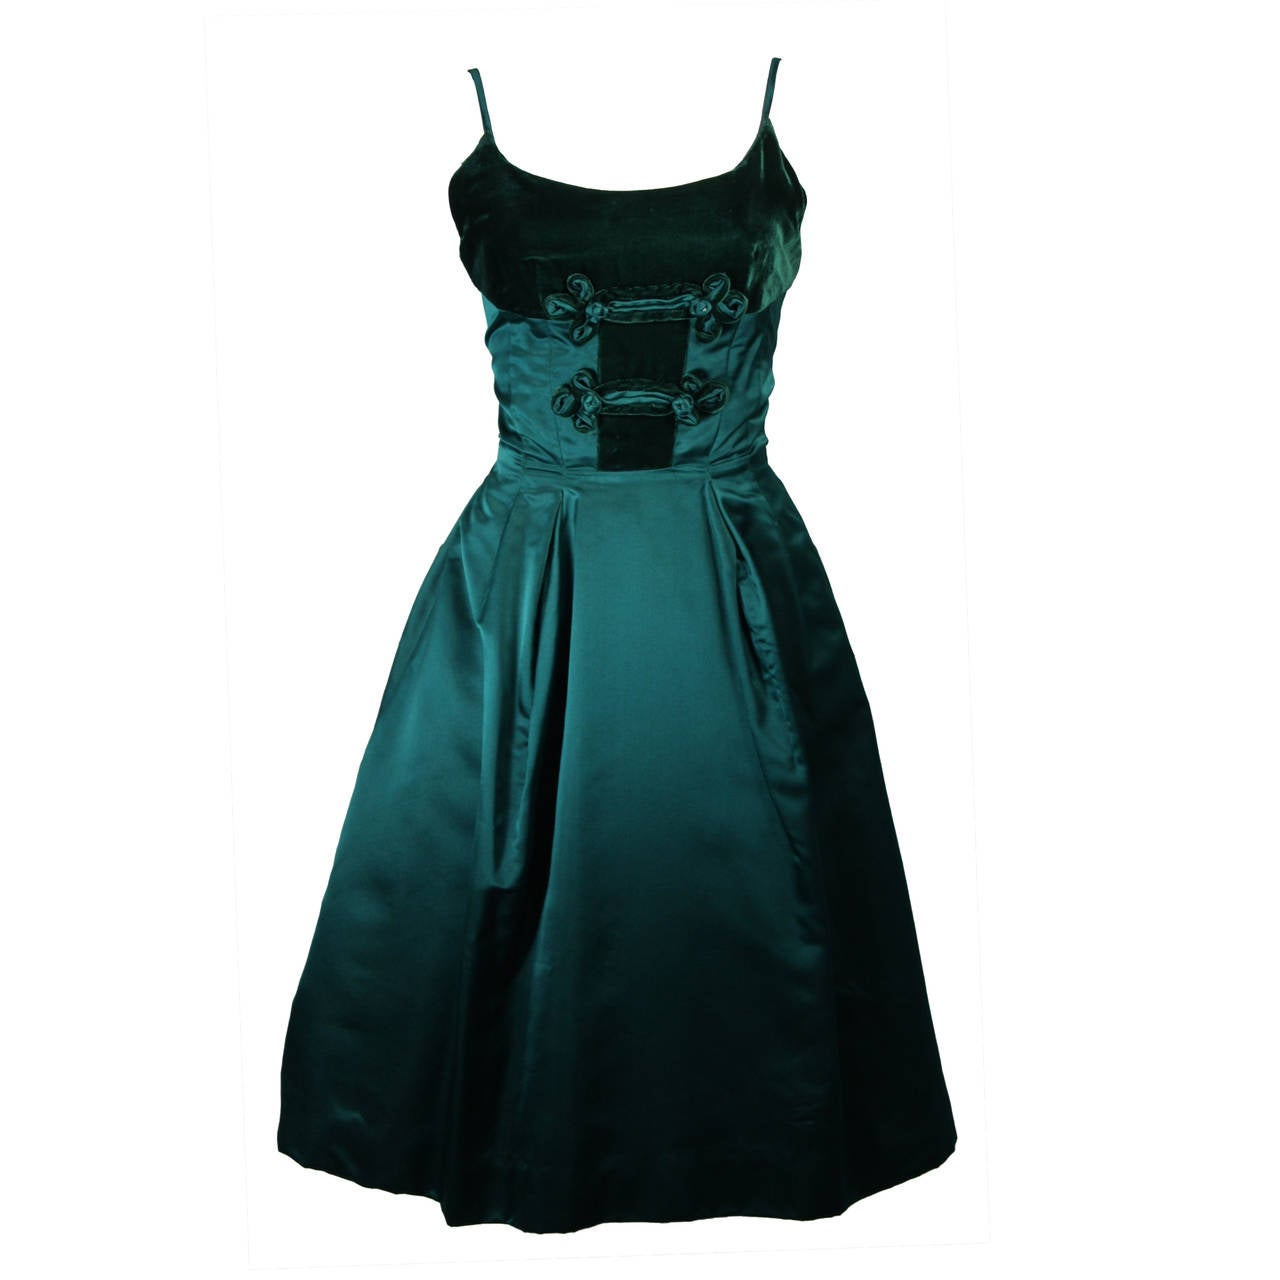 Oleg Cassini Emerald Silk and Velvet Applique Dress Size Small For Sale